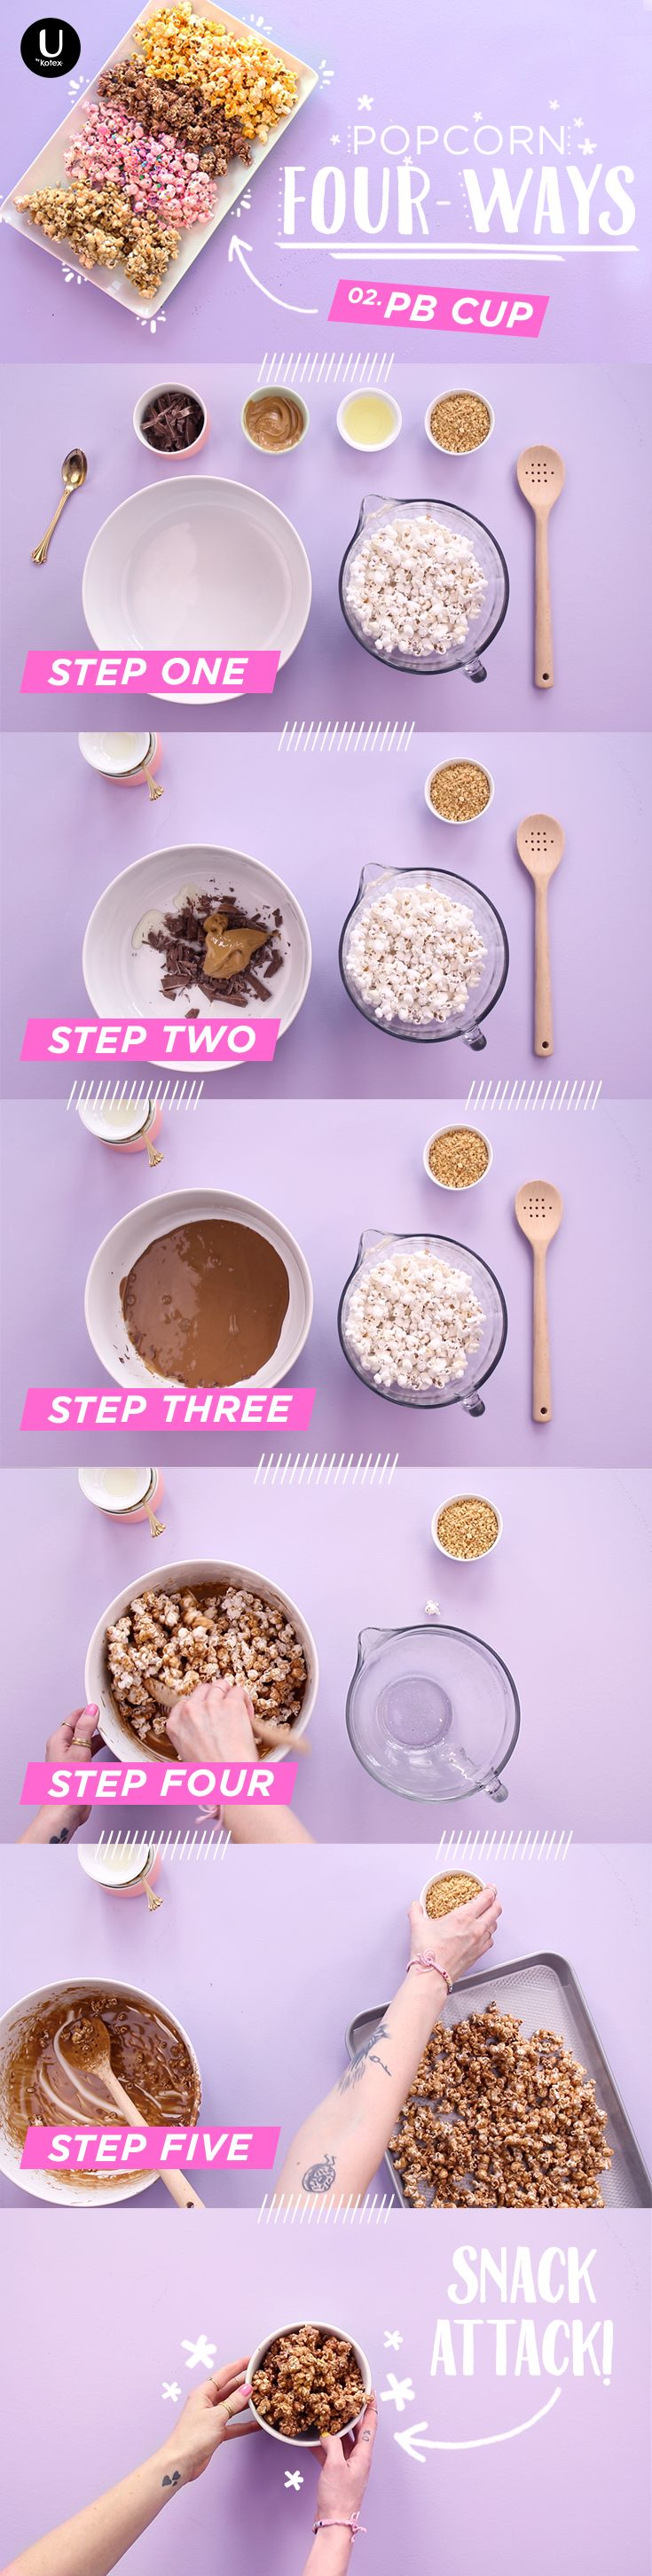 Best images about period cravings on pinterest red